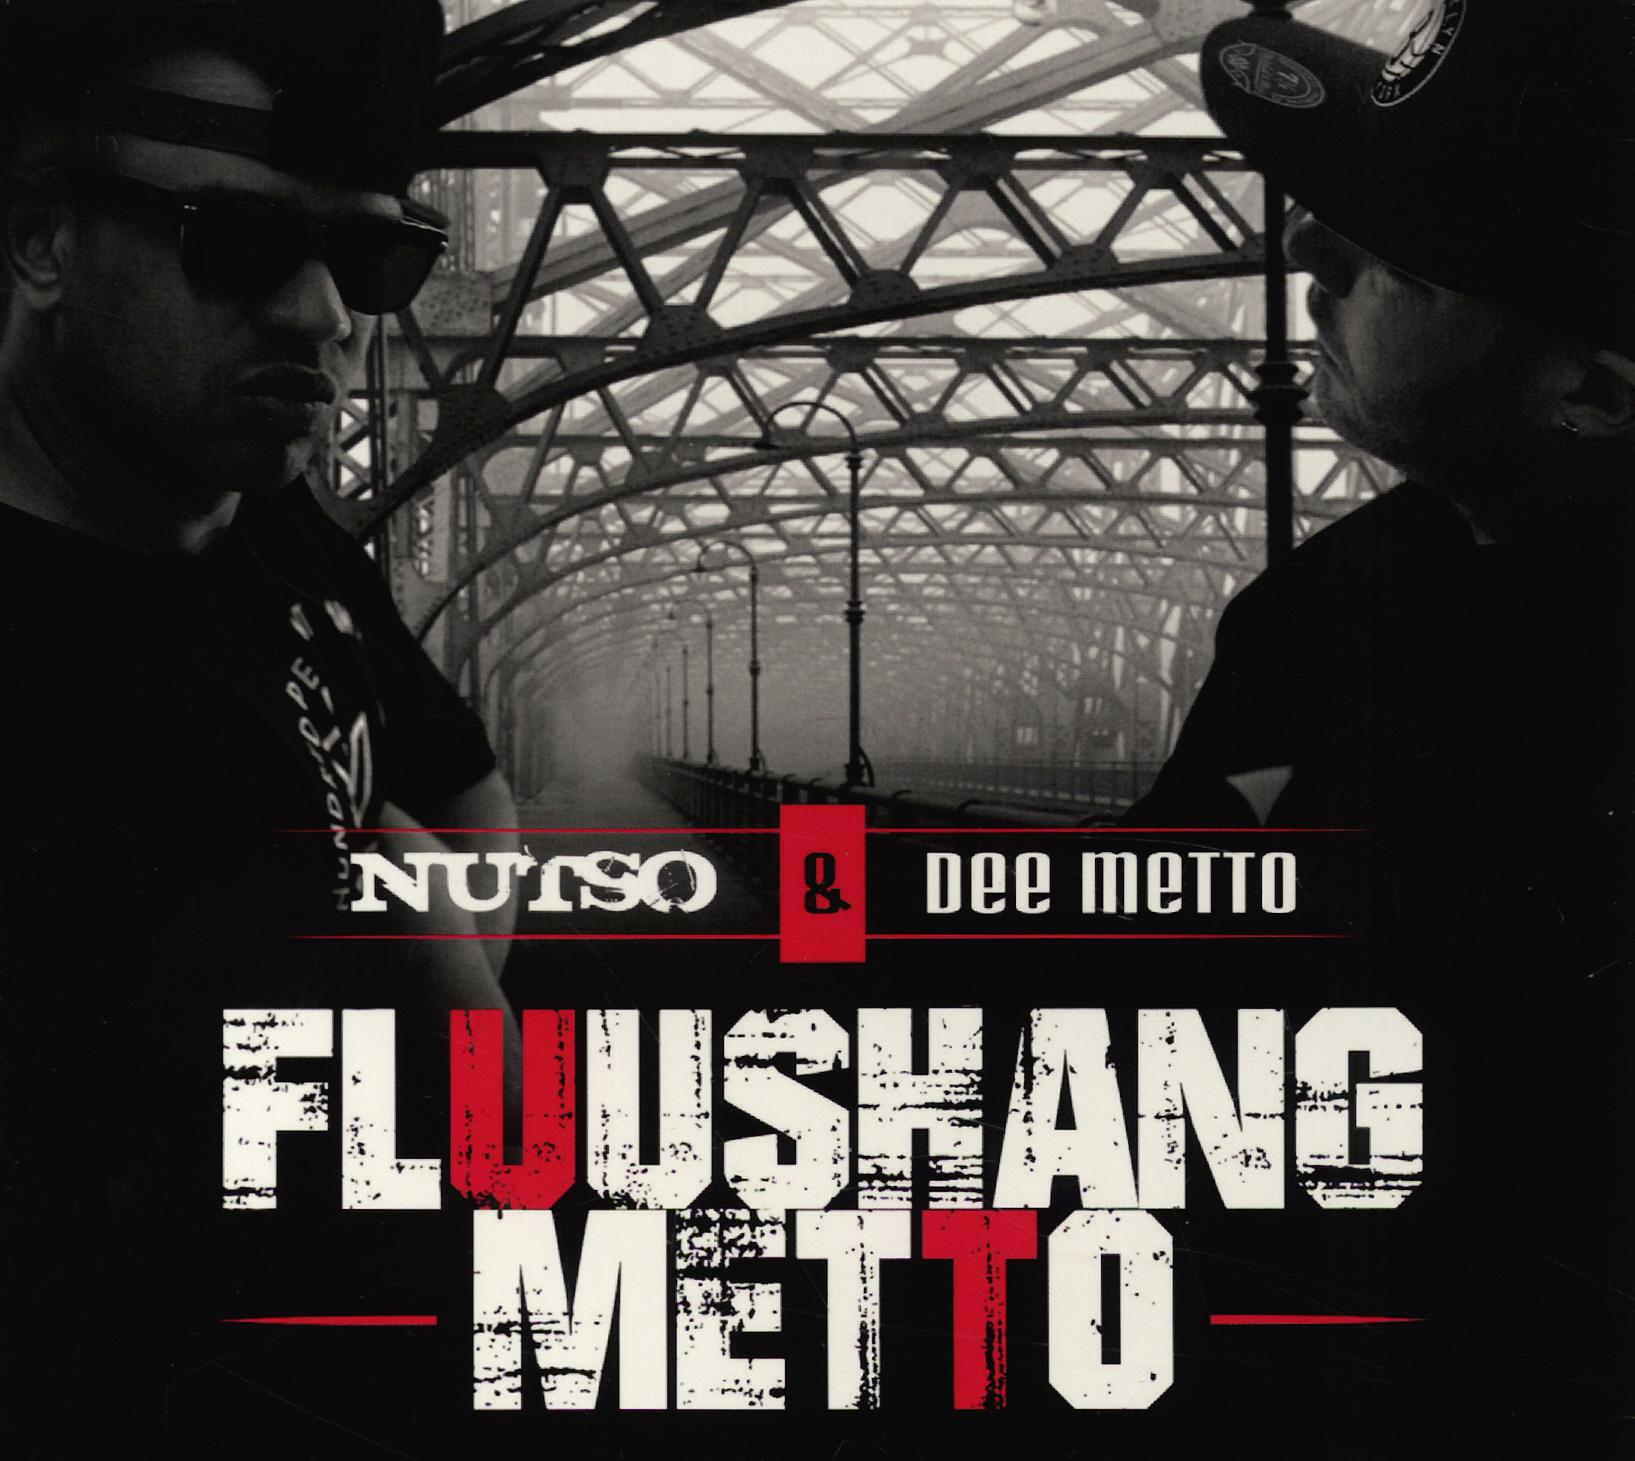 Nutso and Dee Motto - Fluushang Metto (2014)